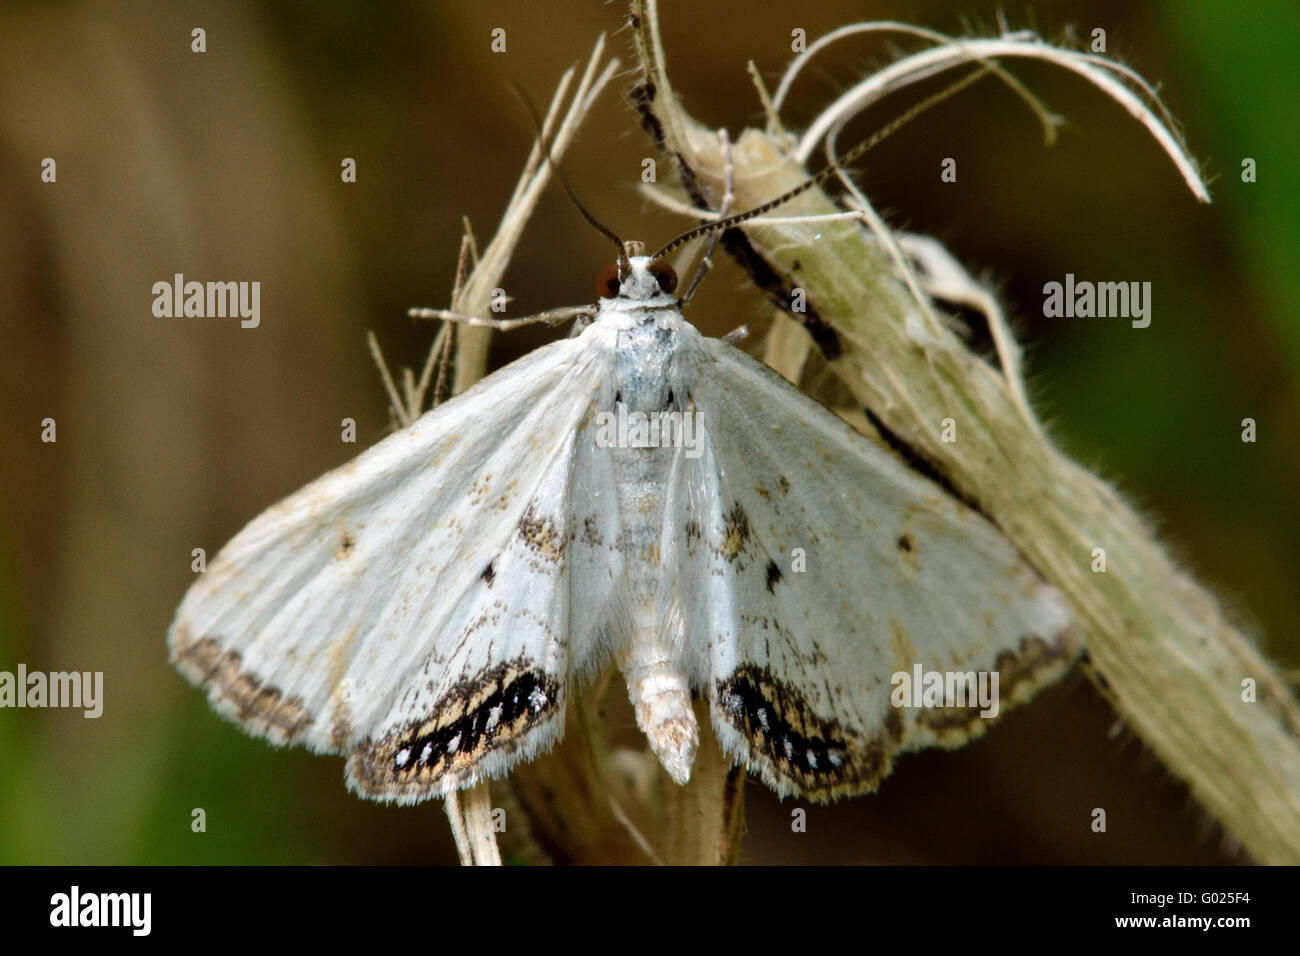 small white moth stockfotos small white moth bilder alamy. Black Bedroom Furniture Sets. Home Design Ideas